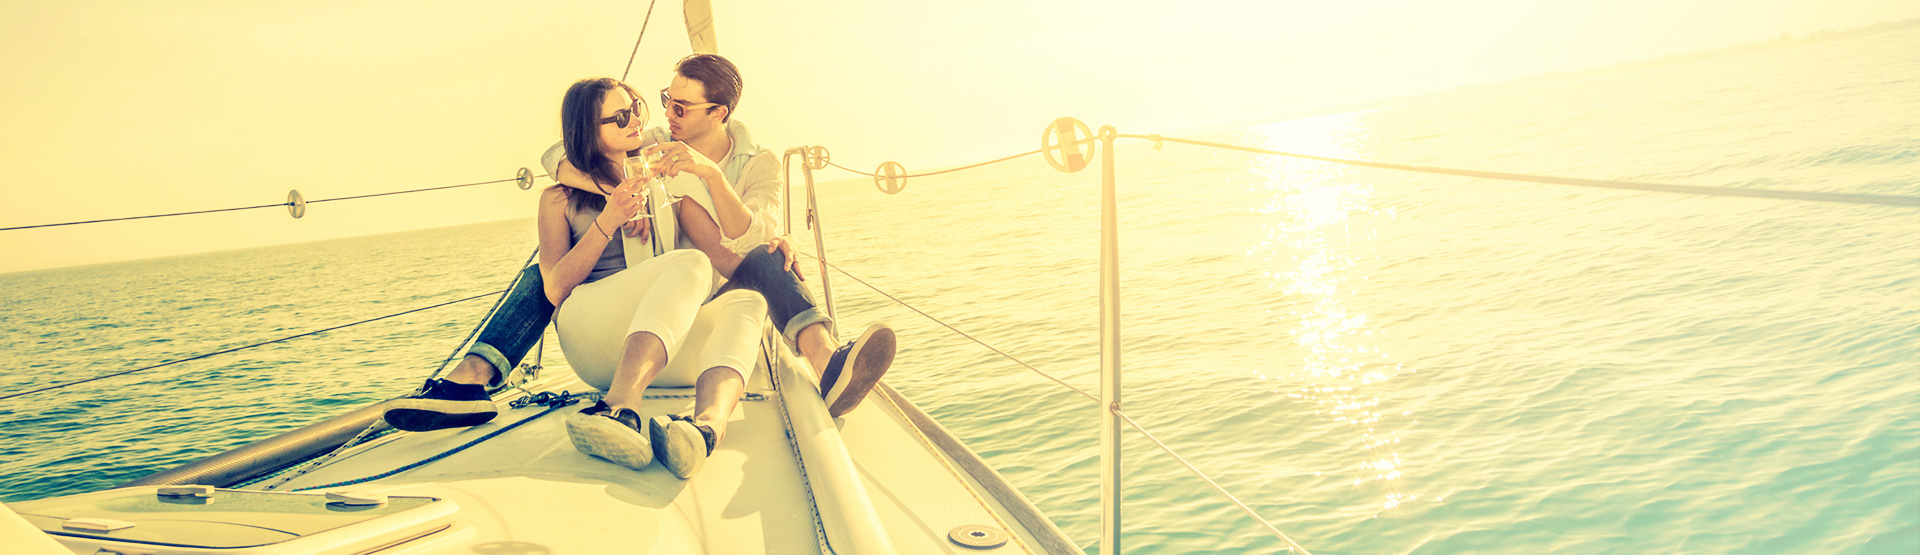 people on boat